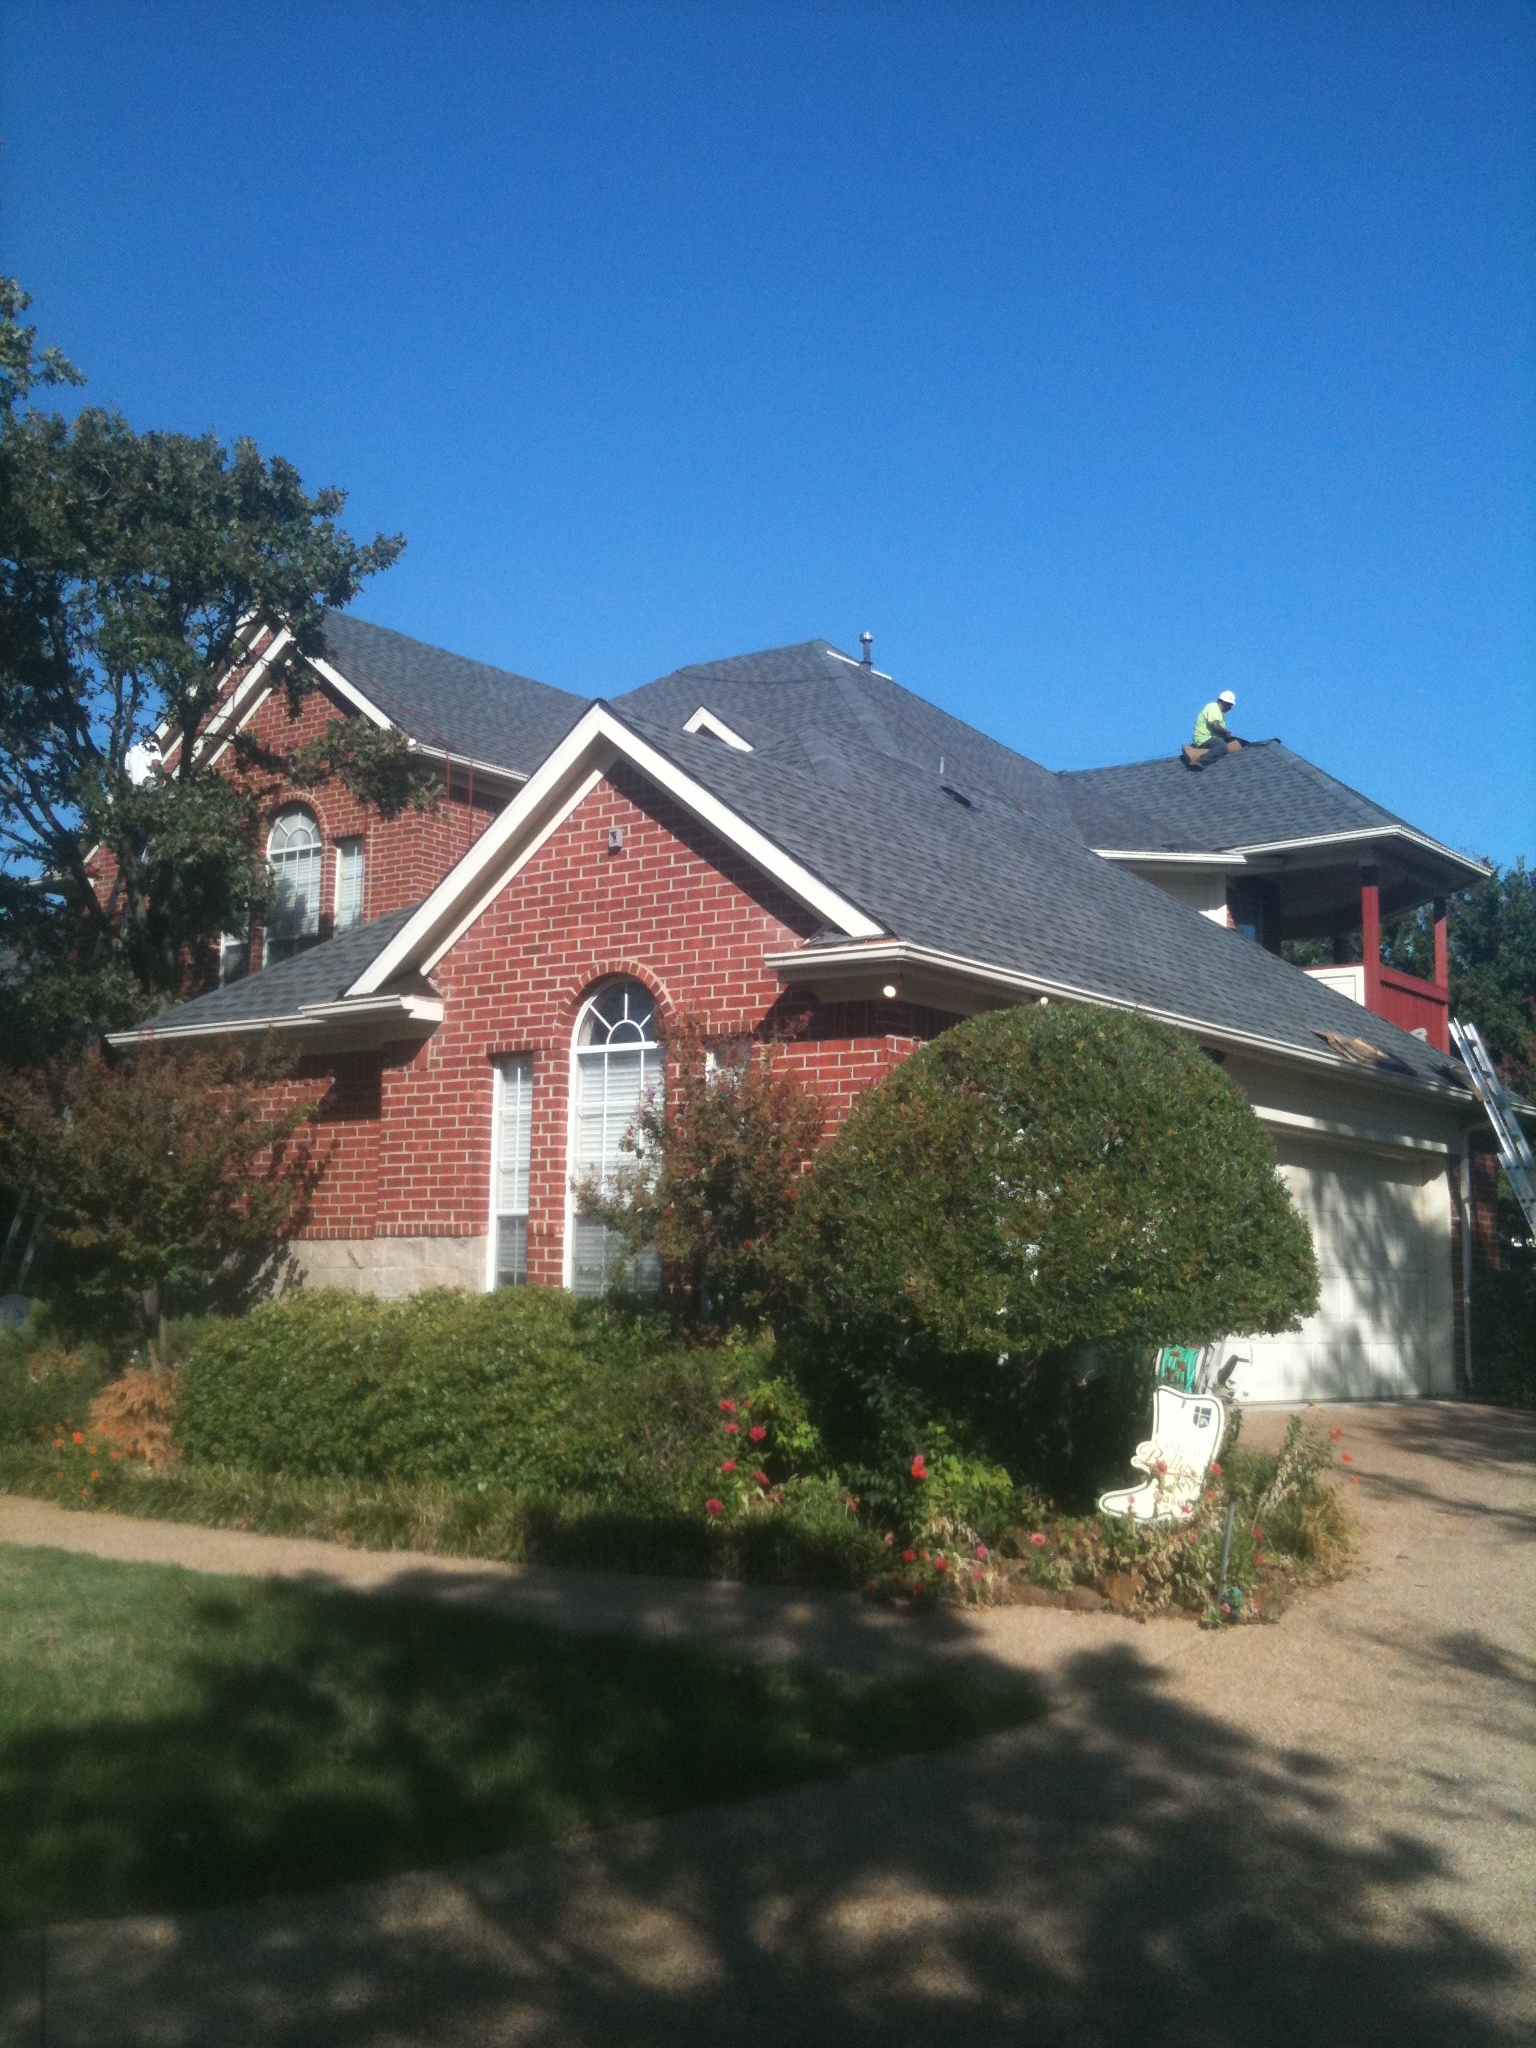 Torres Roofing image 6